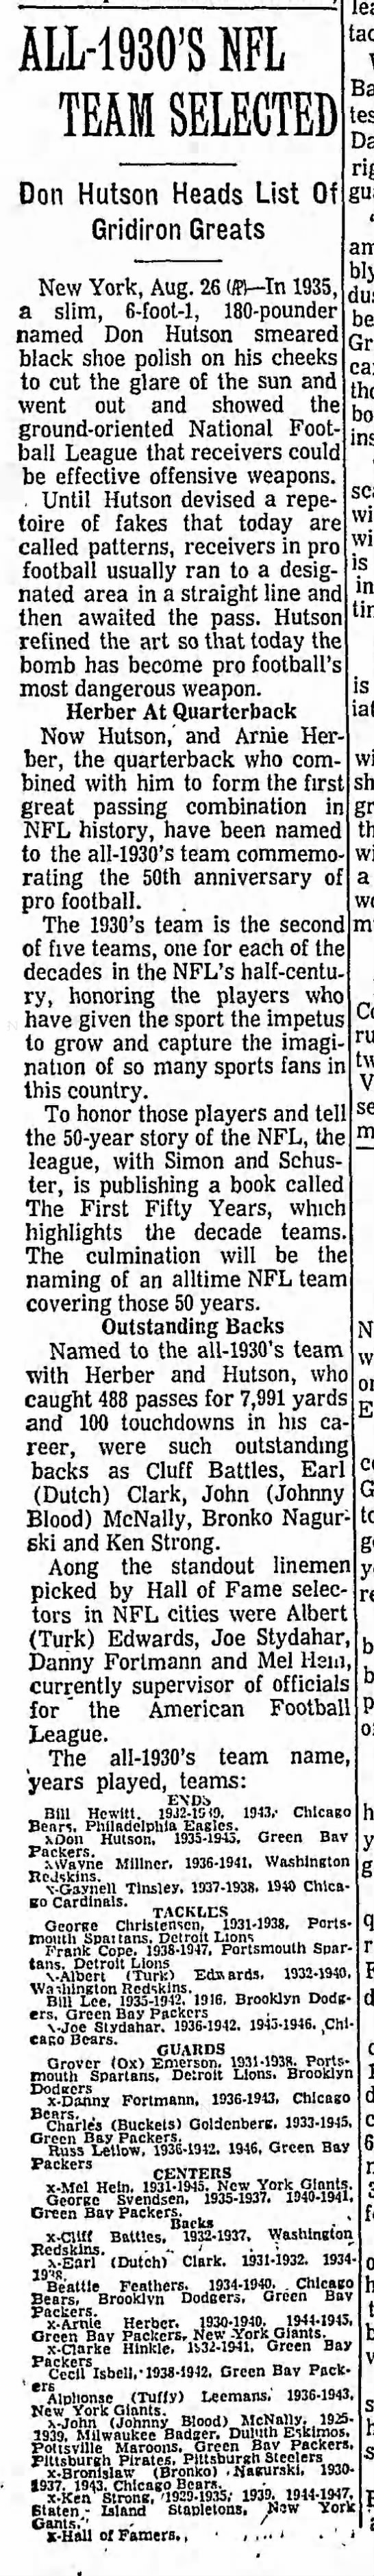 All-1930's NFL Team Selected -